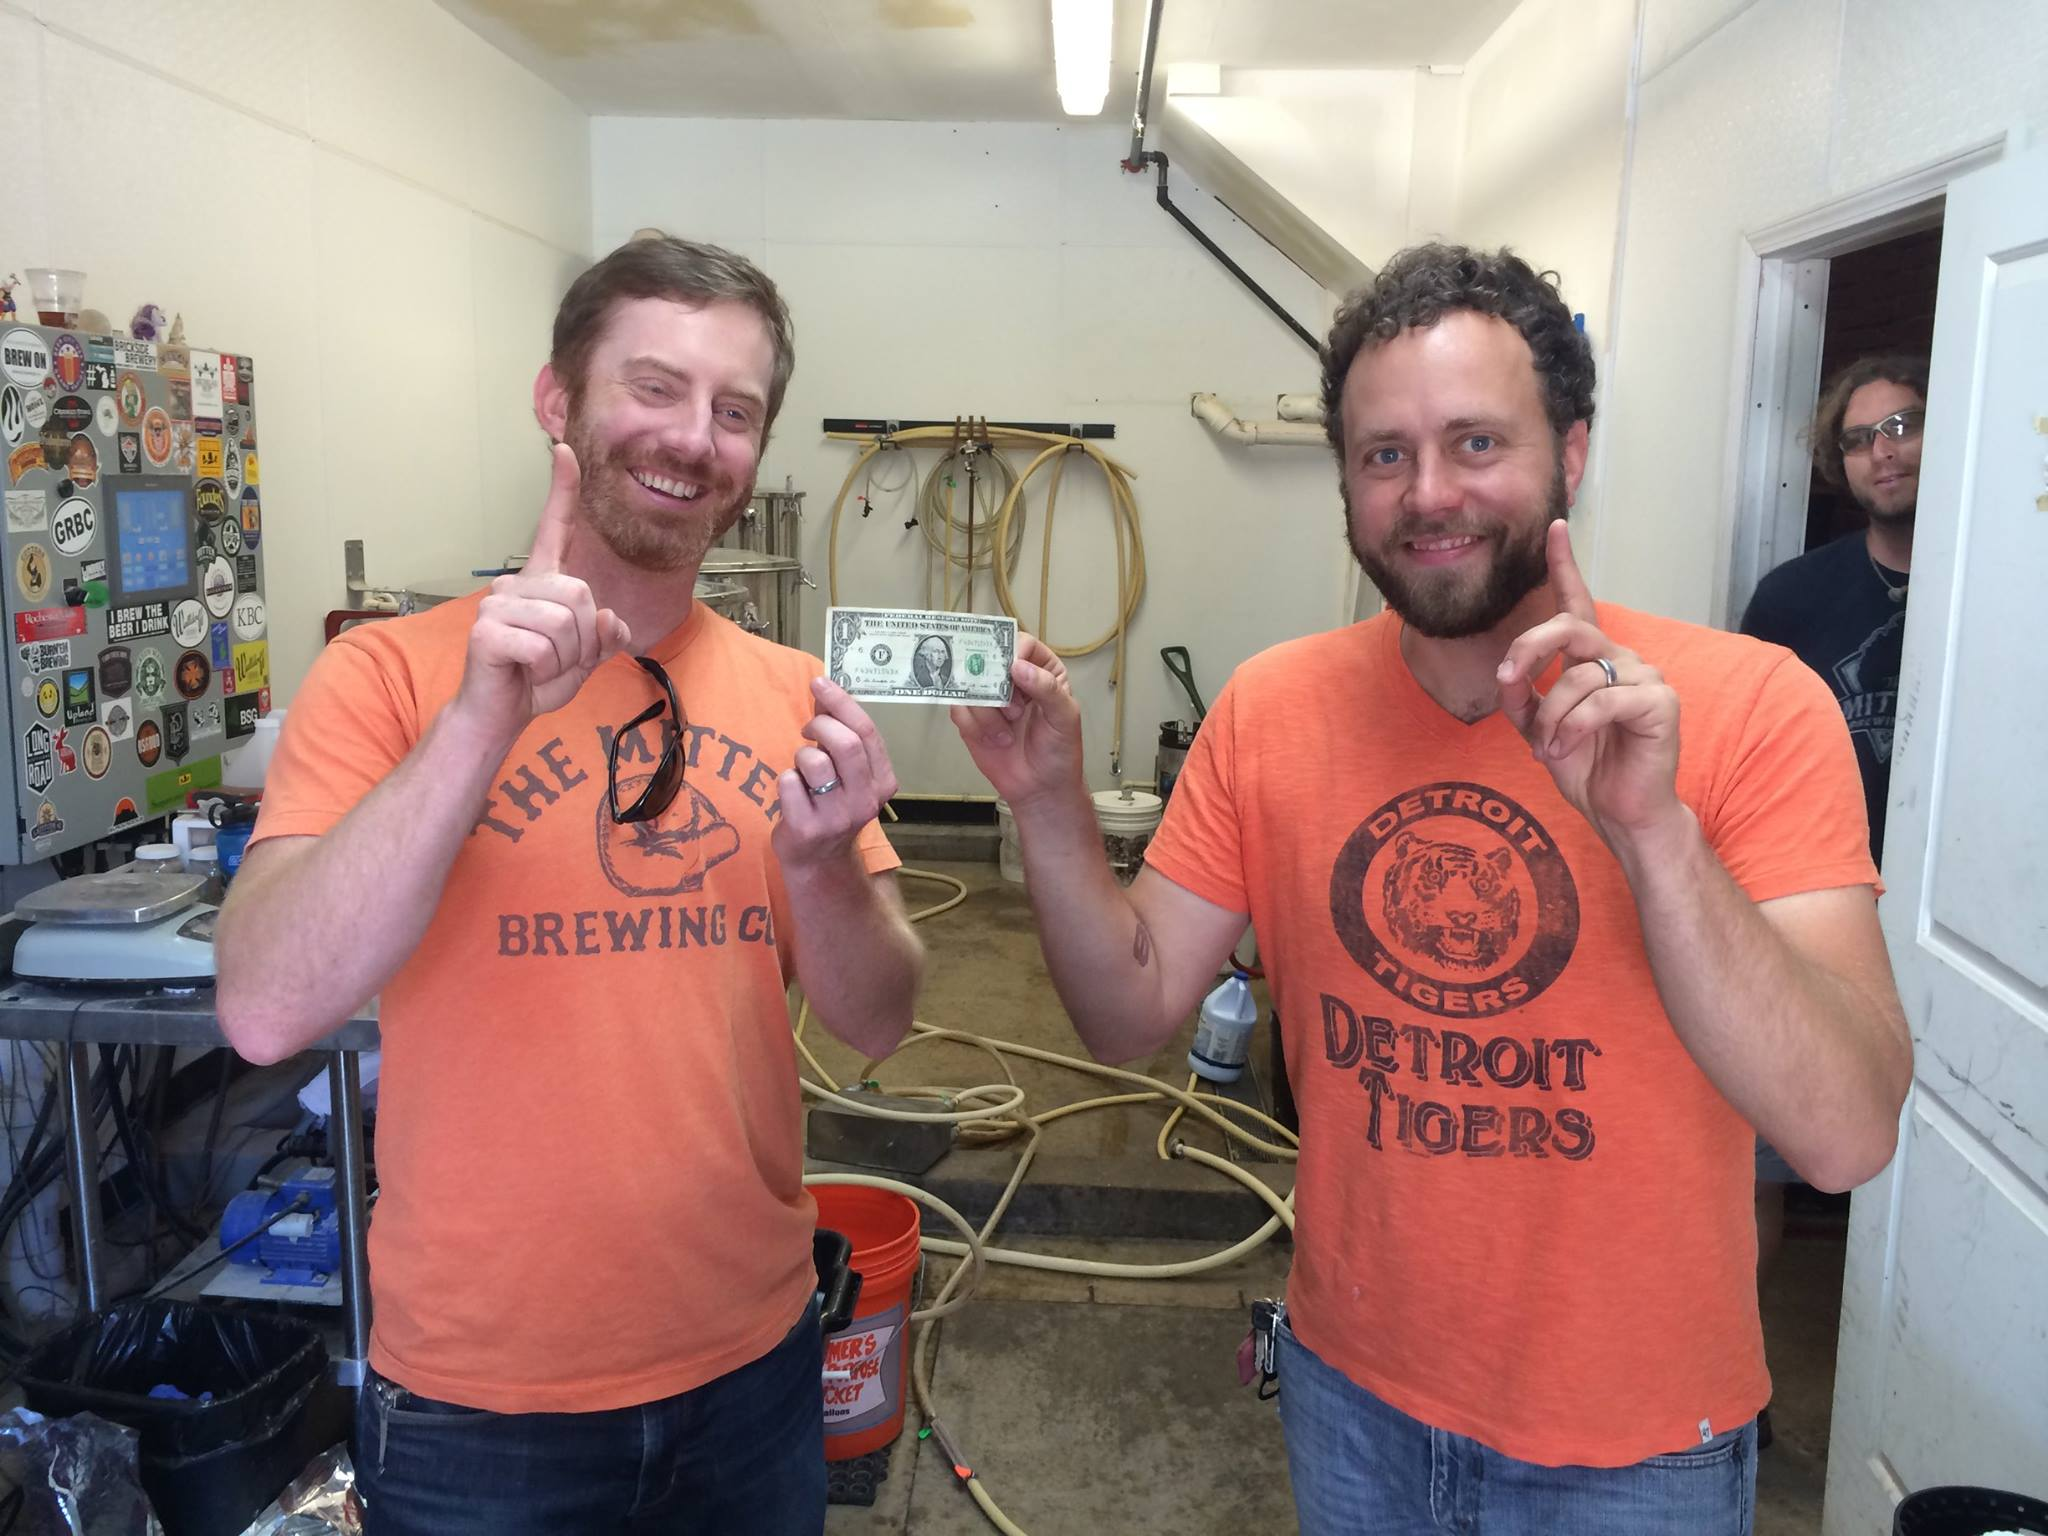 Co-Owners Max and Chris show off the 1st dollar earned. One down, a billion to go!